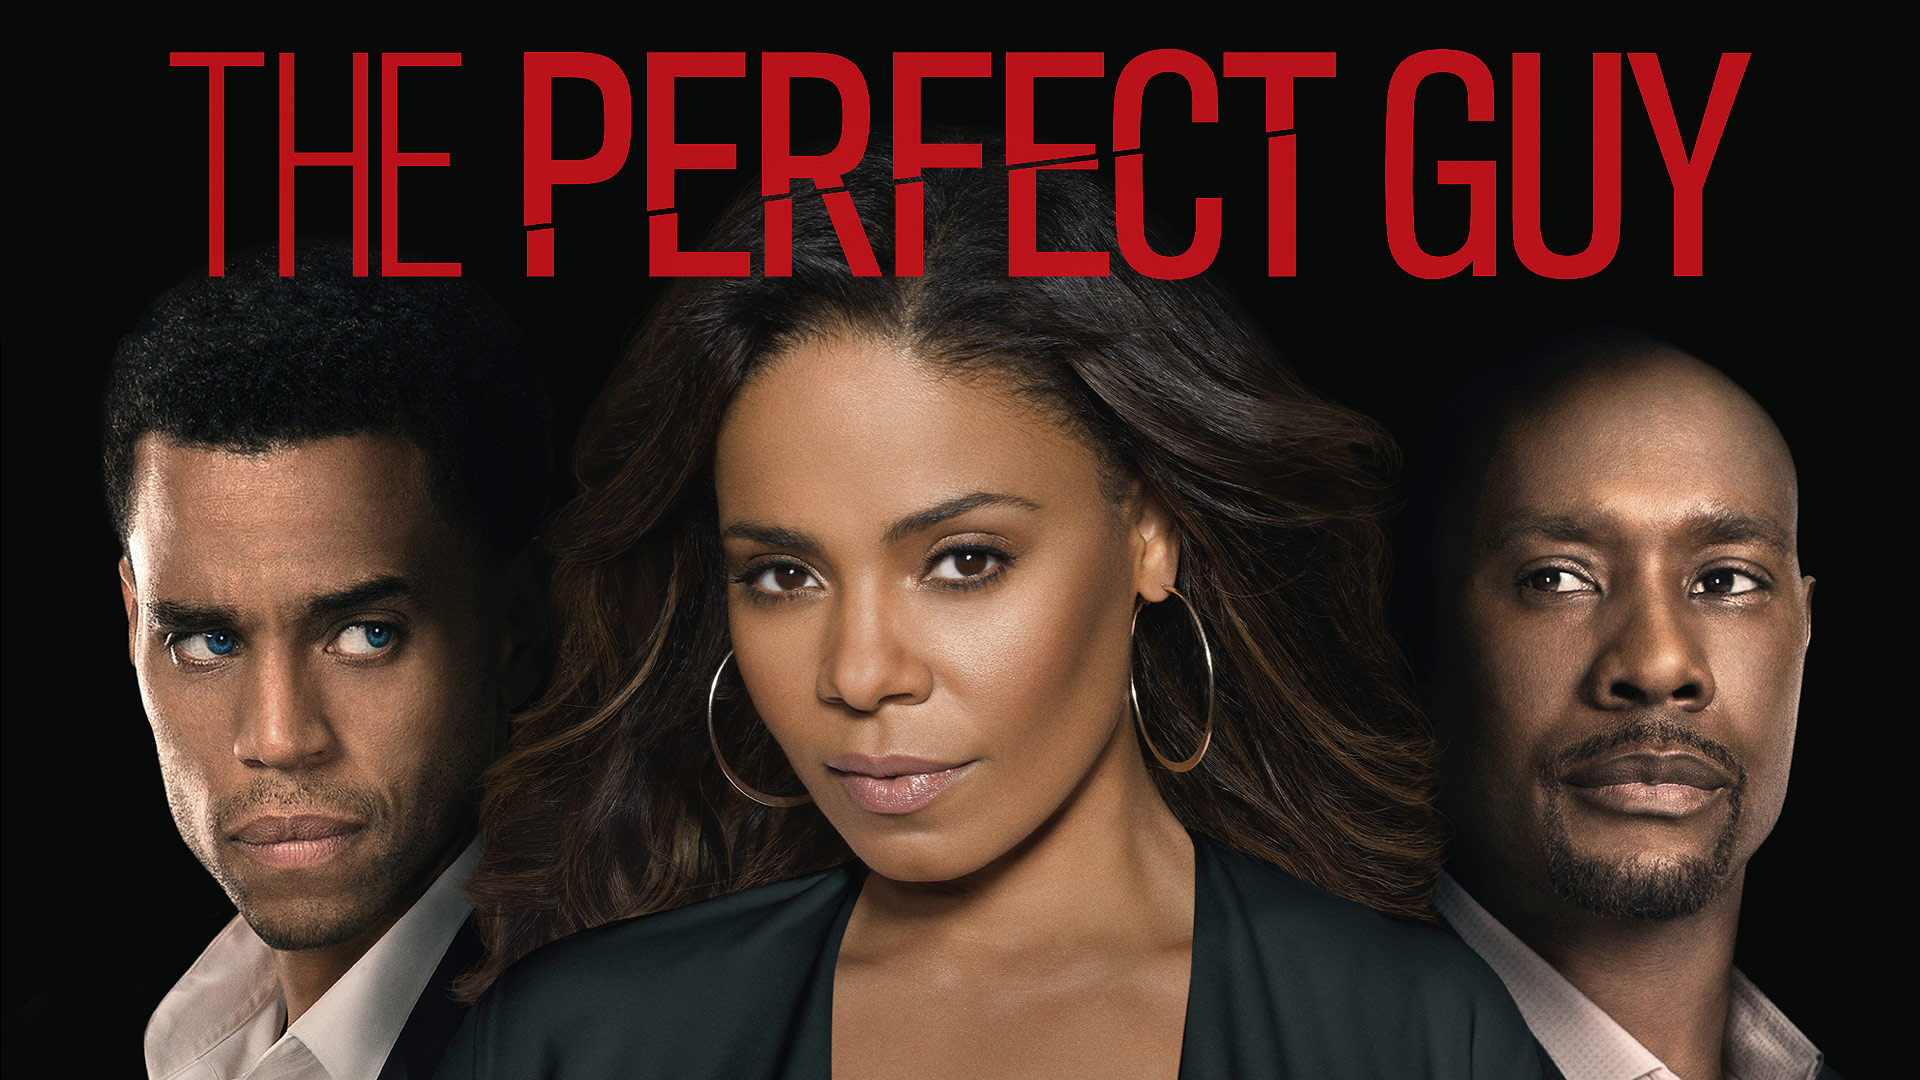 The Perfect Guy (4K UHD)